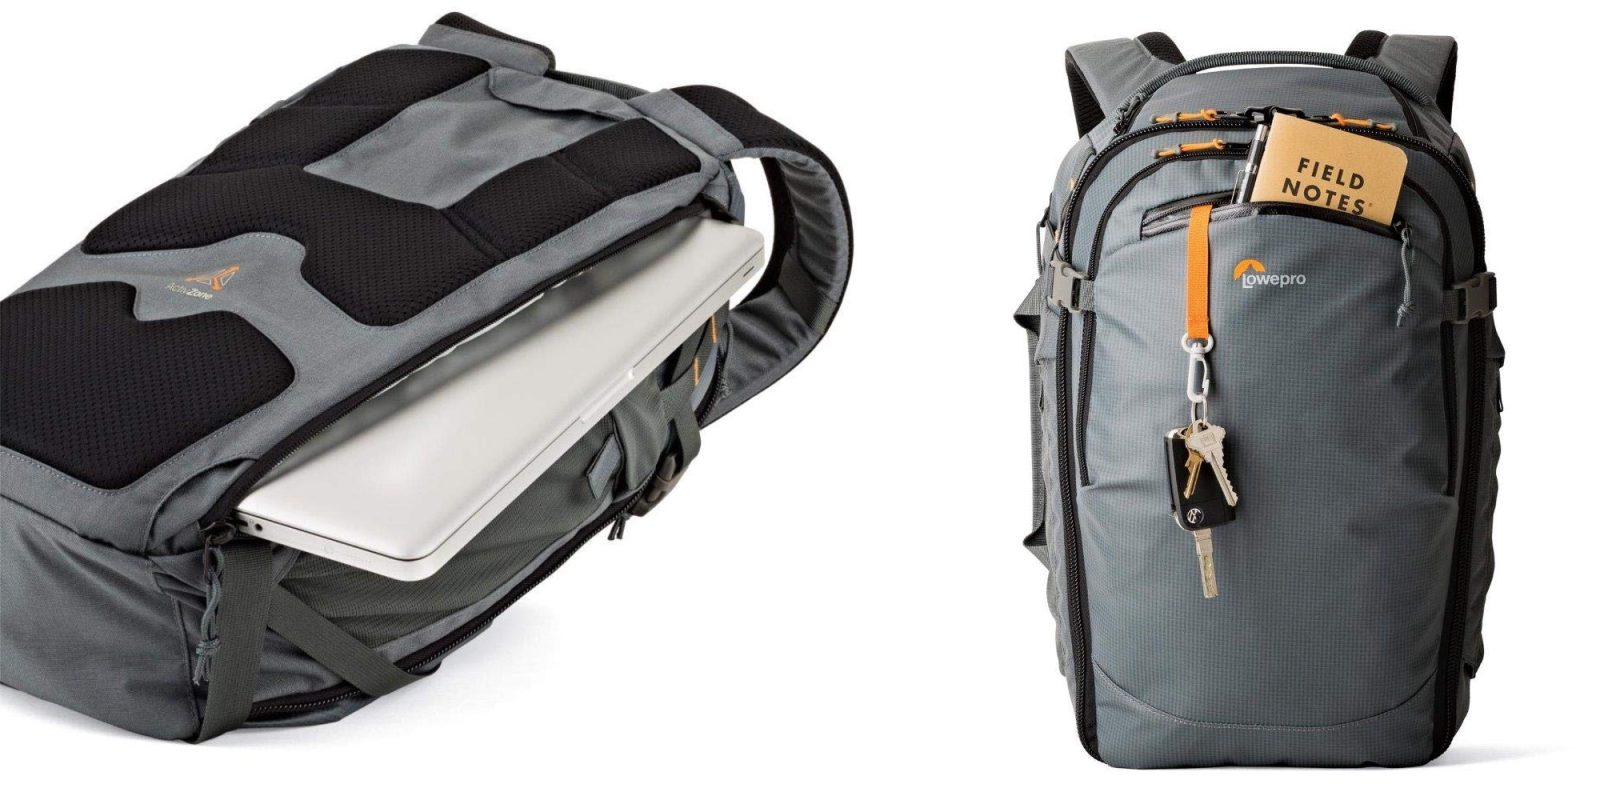 Tote a MacBook in Lowepro's $50 HighLine BP 300 AW Backpack (Reg. $130), more